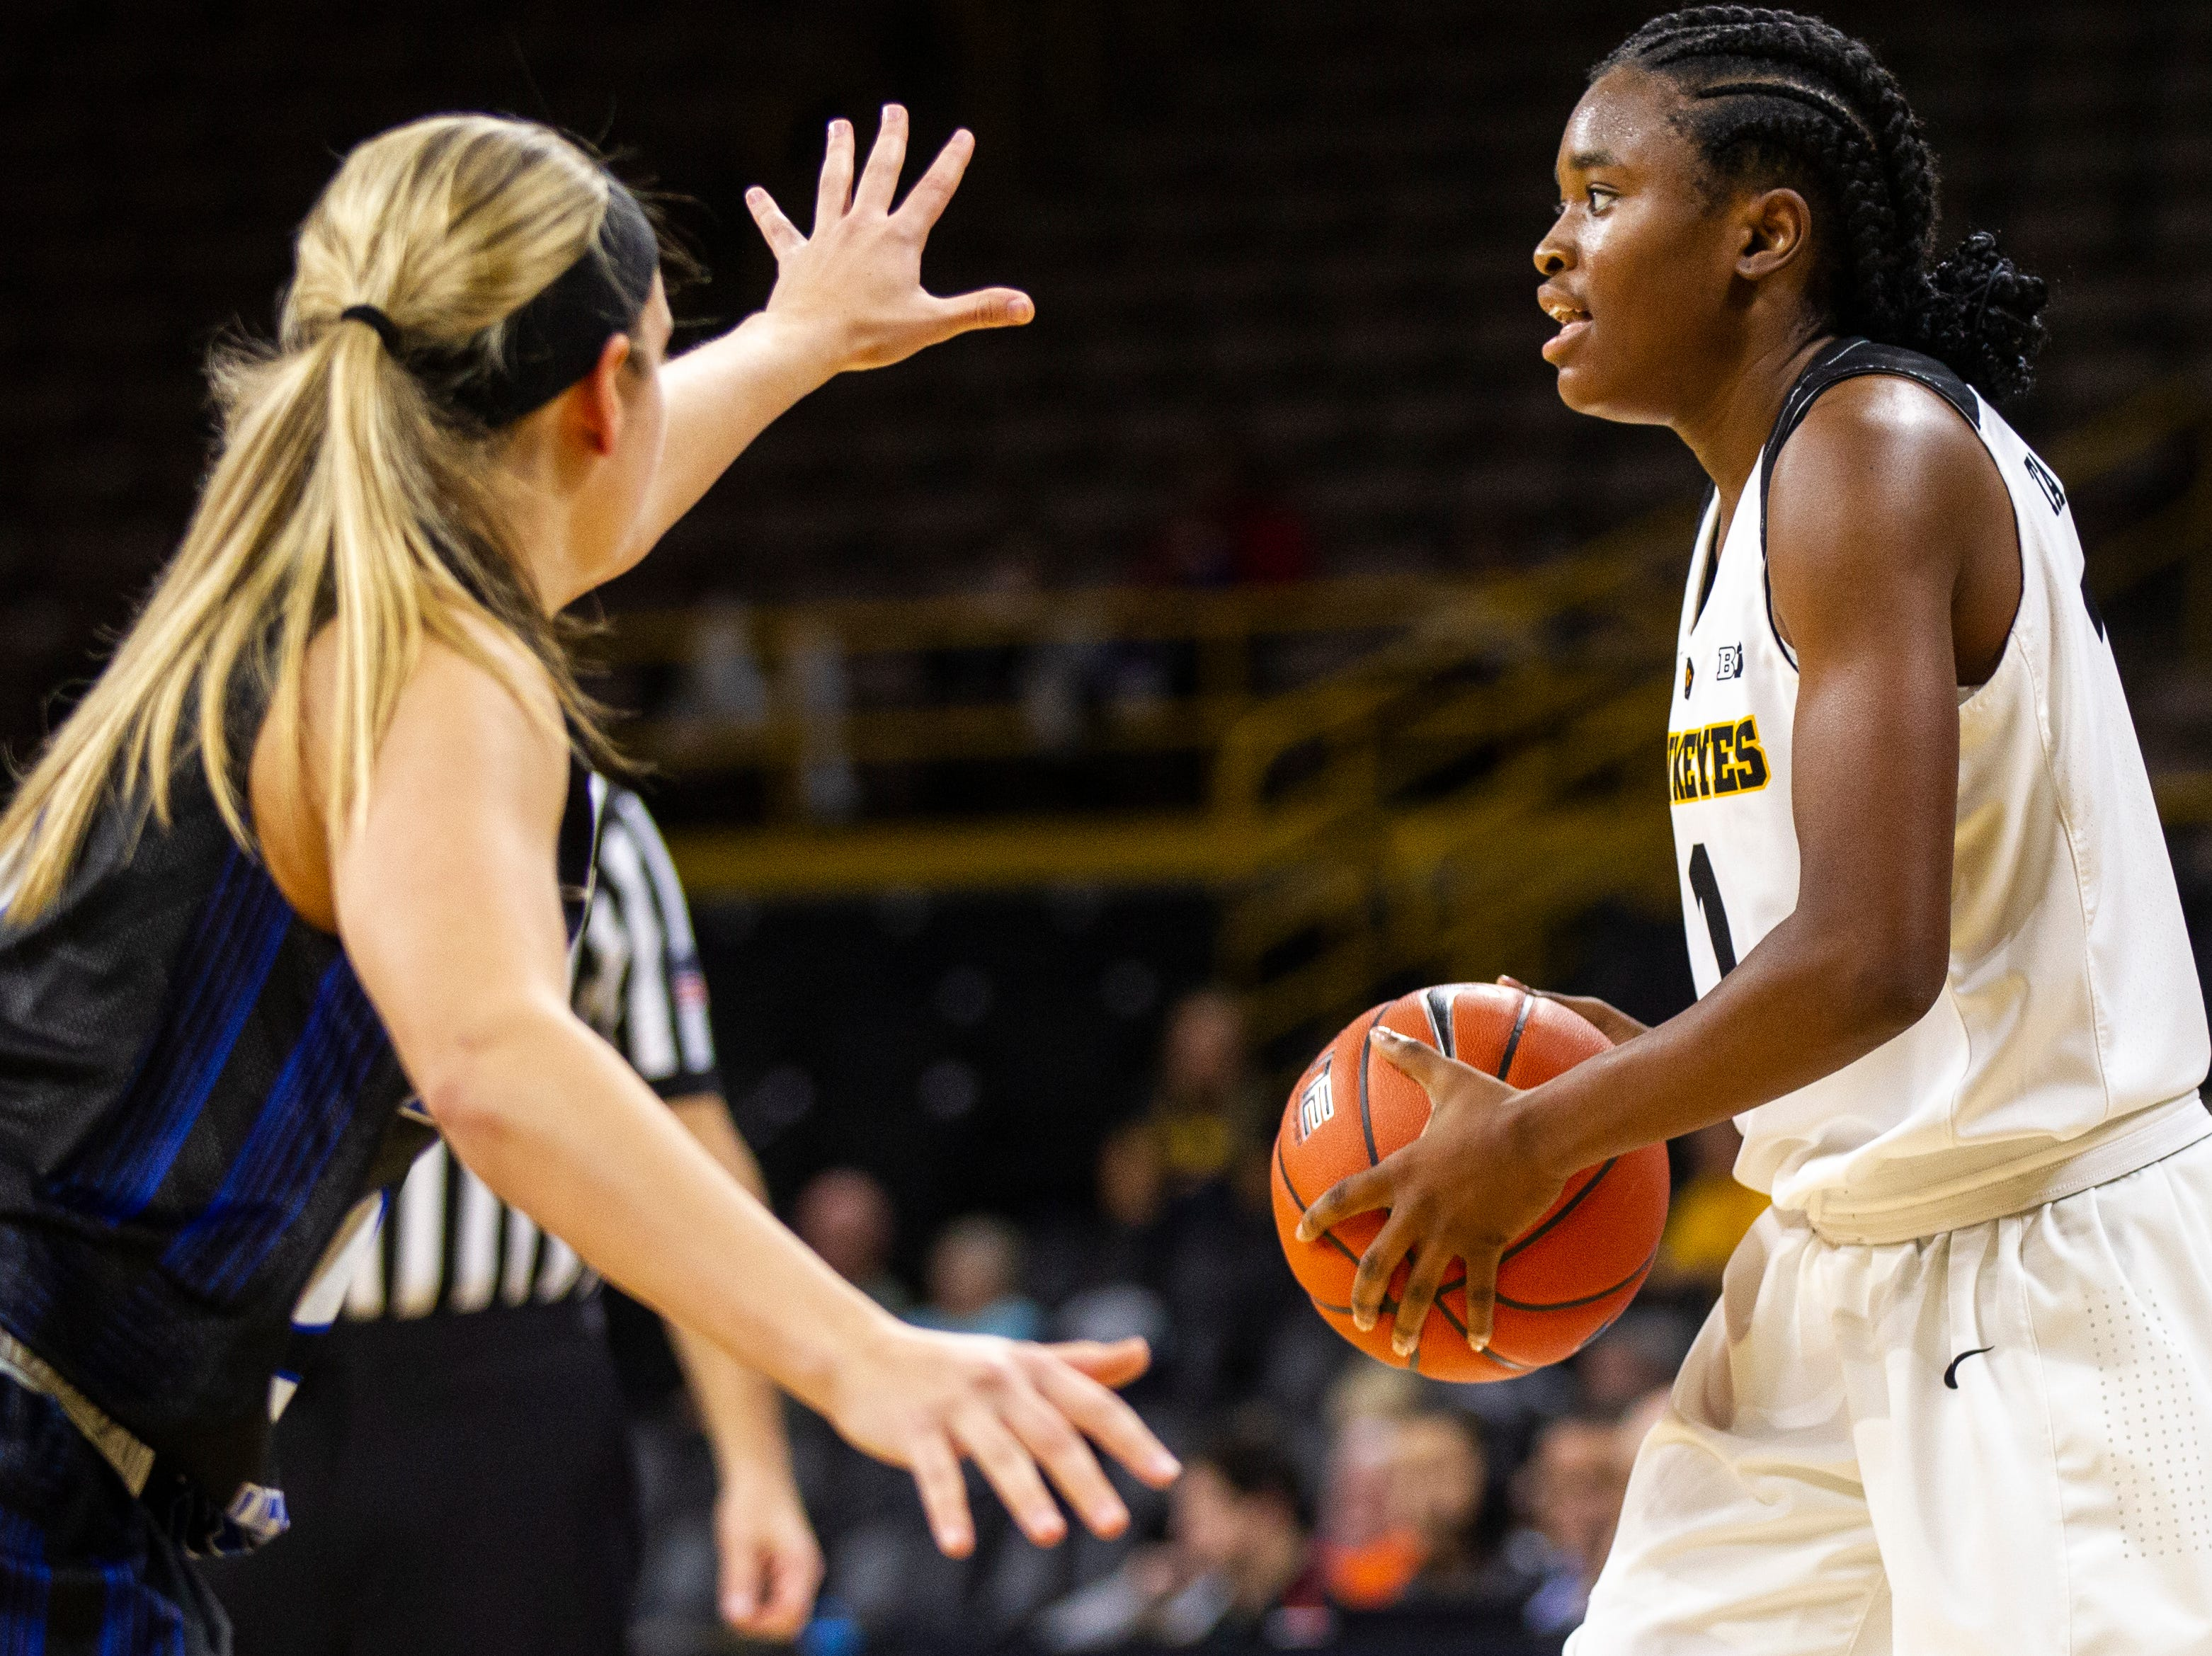 Iowa guard Tomi Taiwo (1) looks to pass during a women's basketball exhibition basketball game on Tuesday, Nov. 6, 2018, at Carver-Hawkeye Arena in Iowa City.